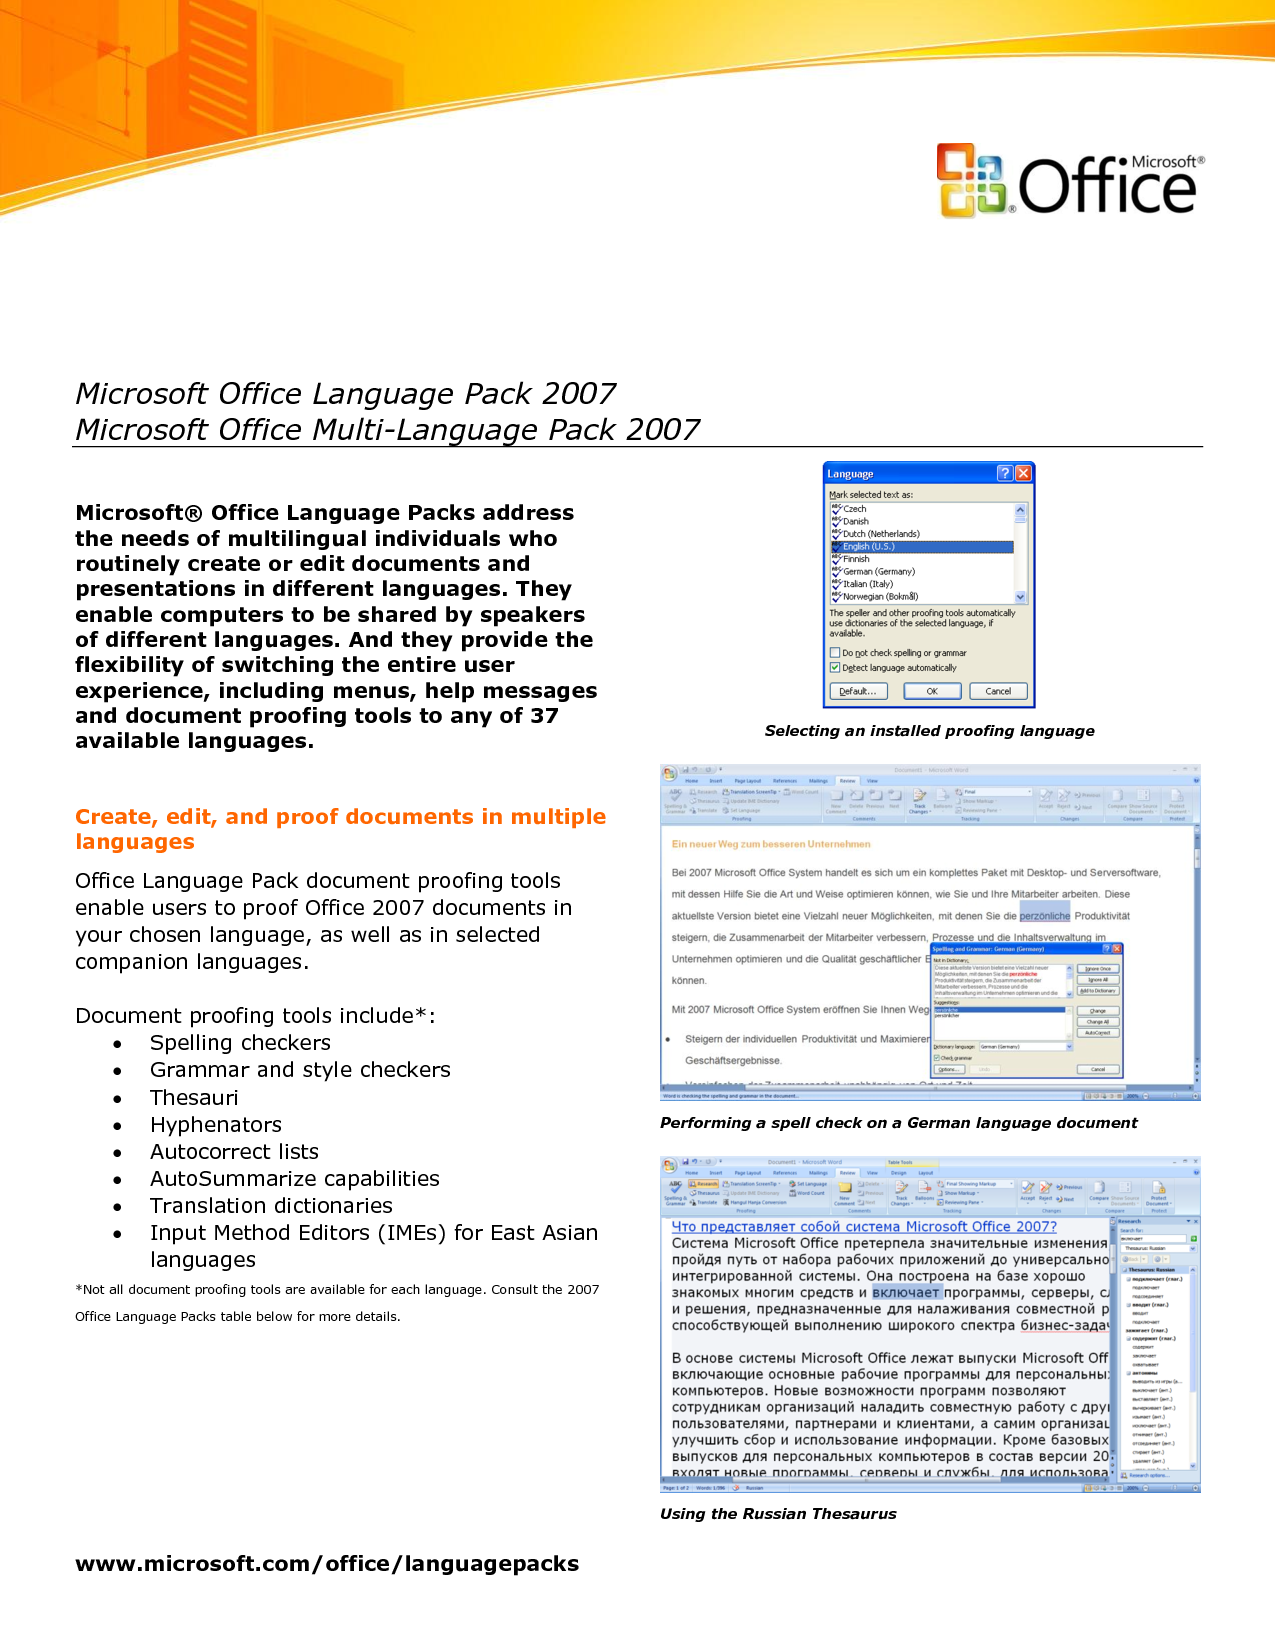 Pack Office Microsoft 2013 Free Microsoft Office Templates Download Free Microsoft Office